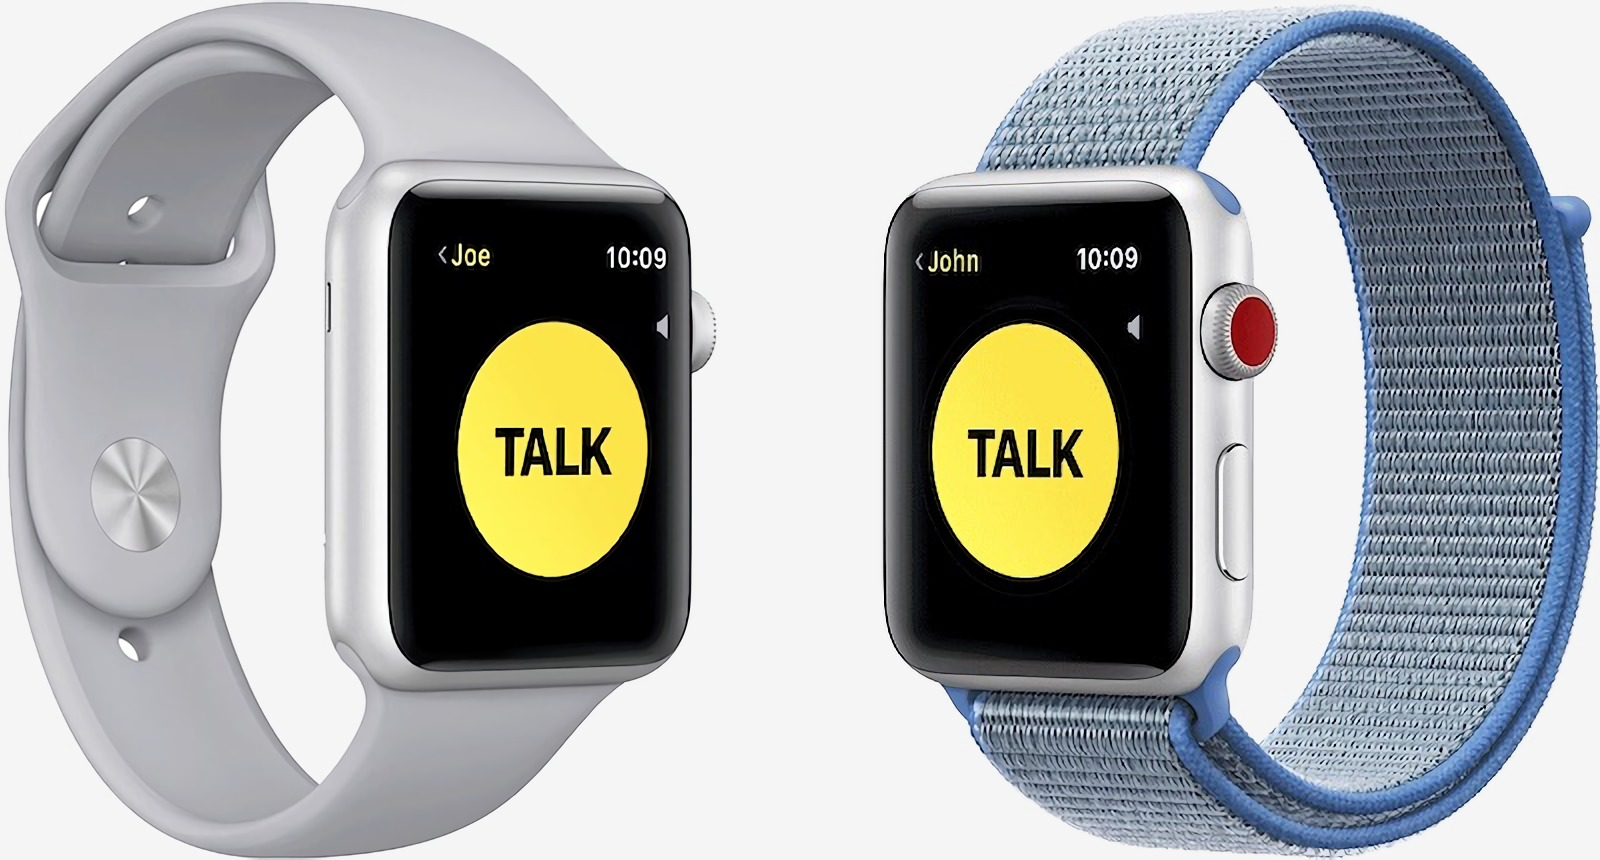 Apple disables Walkie-Talkie app as it works to patch eavesdropping vulnerability